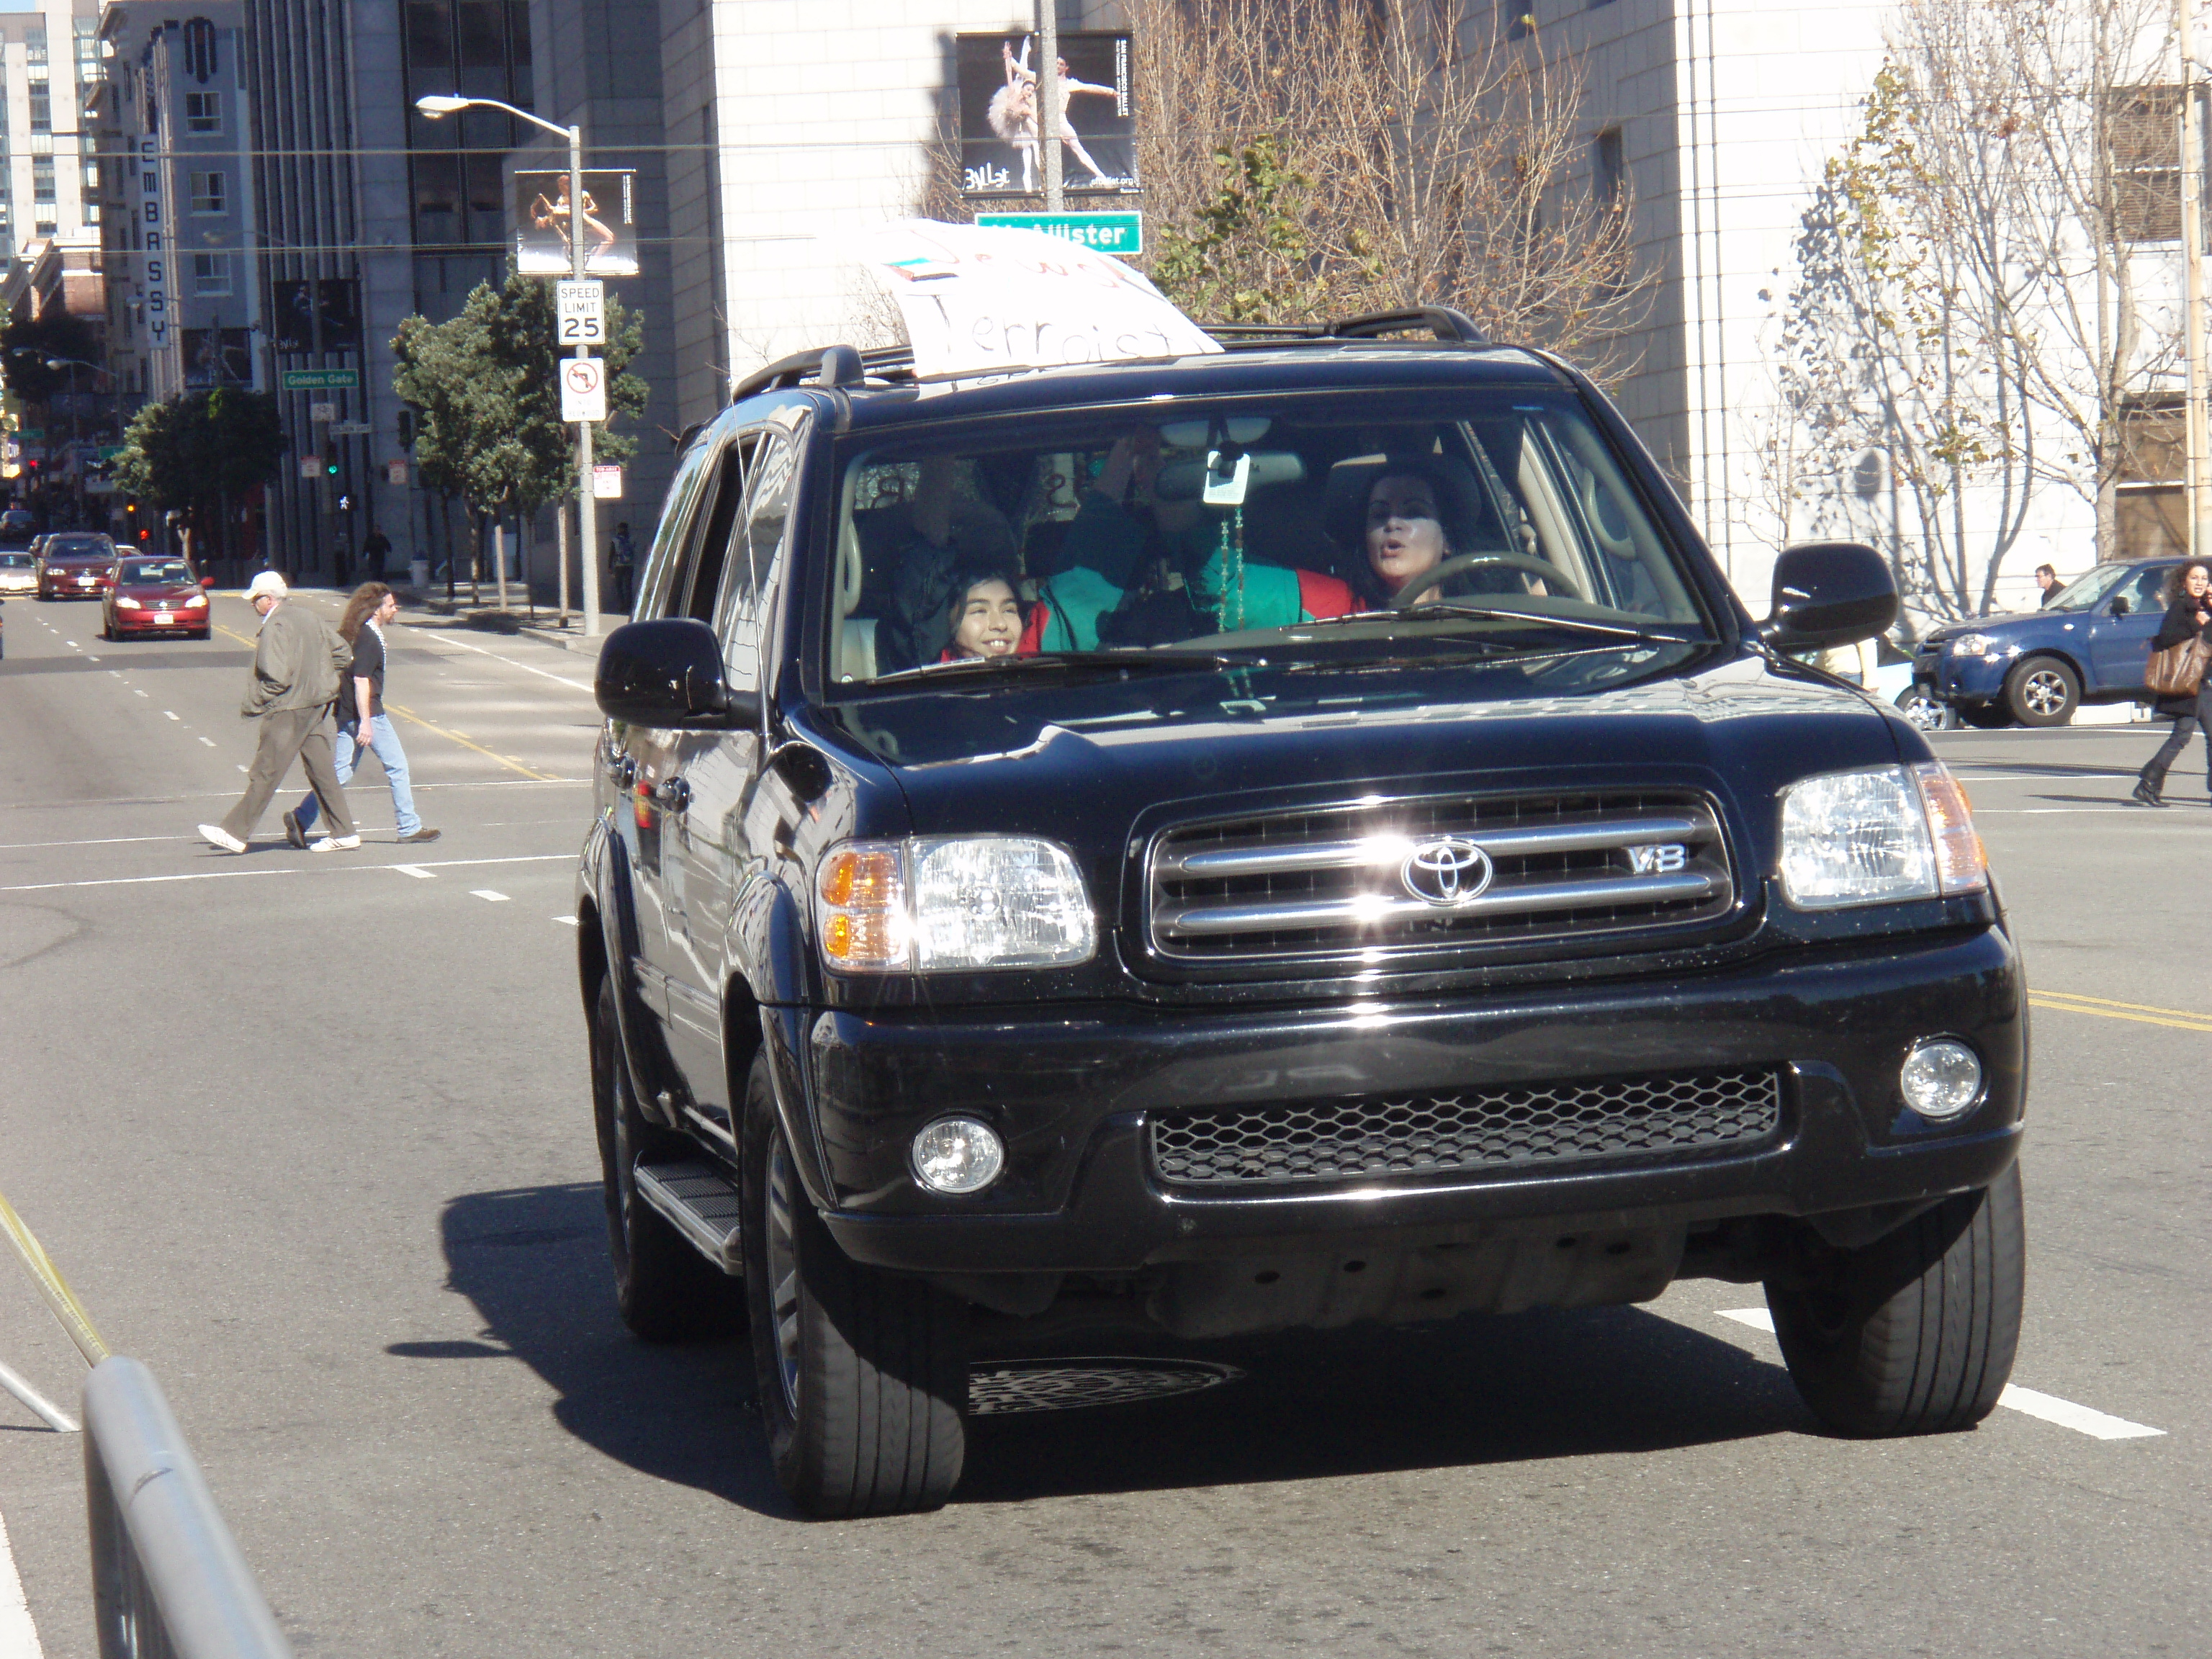 filehamas supporter driving the car with kidsjpg